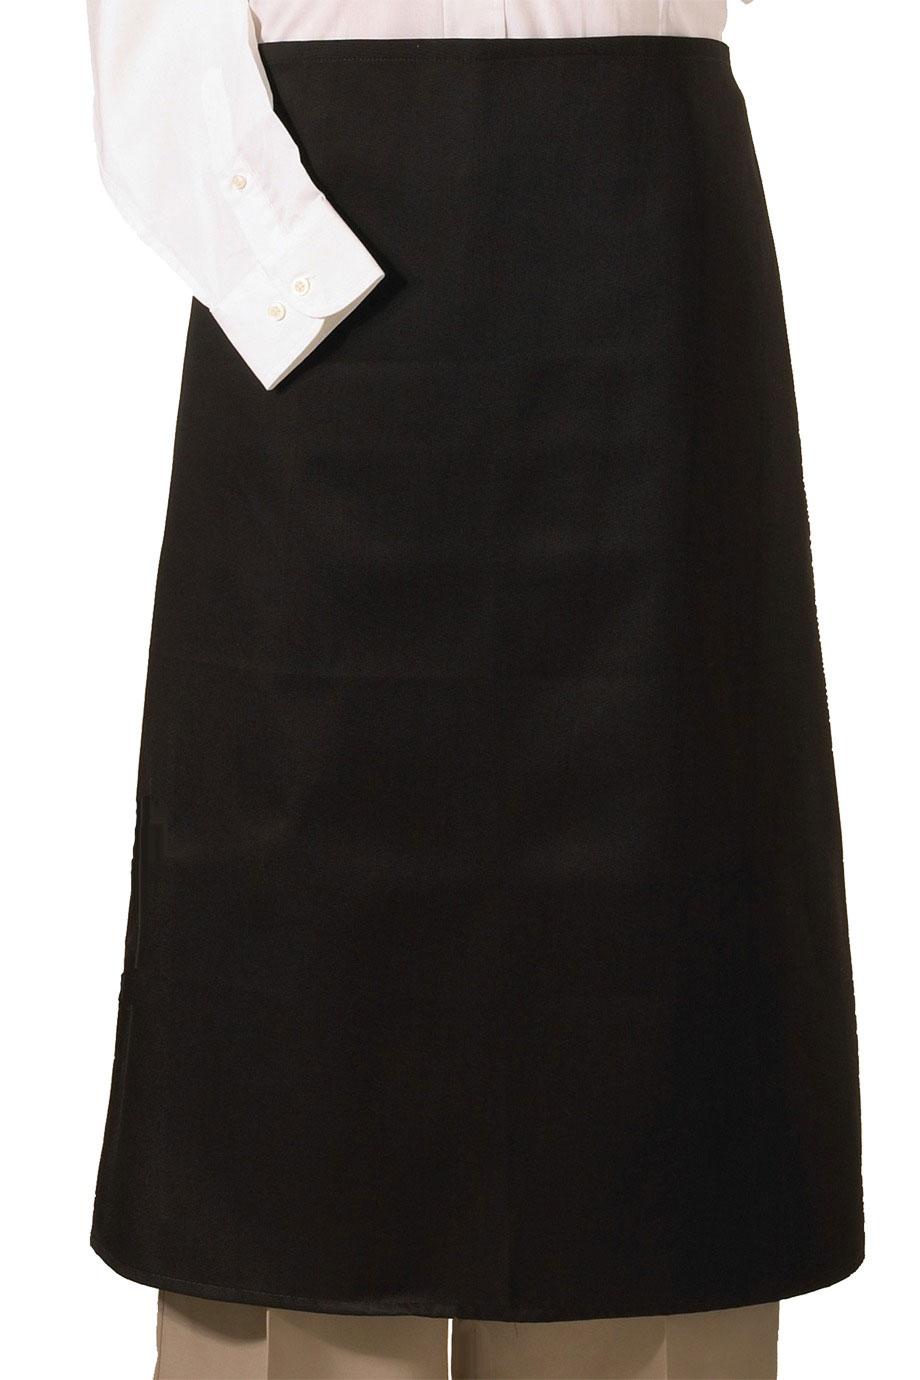 No-Pocket Bar Apron